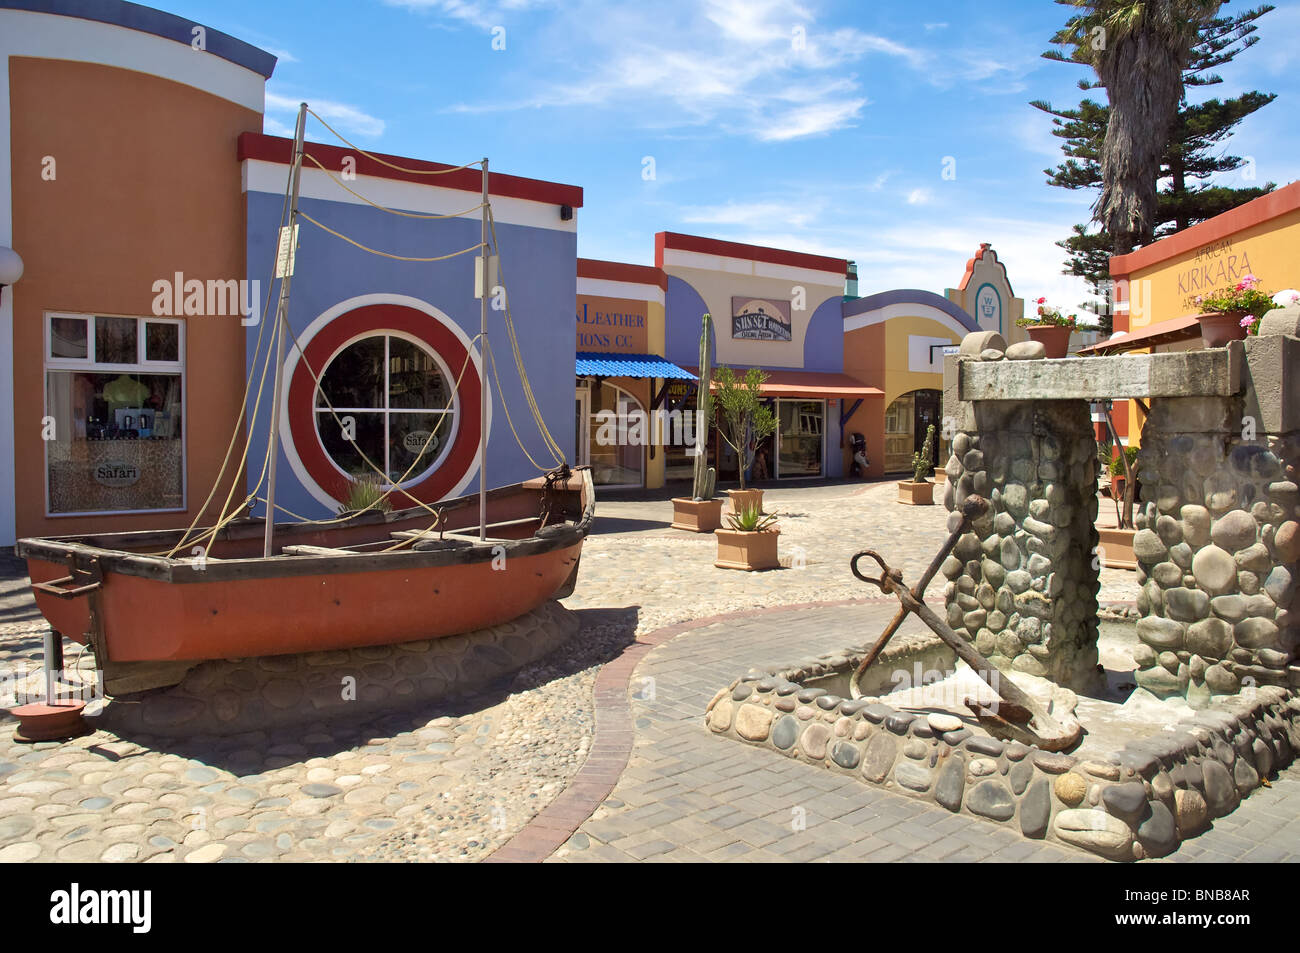 Swakopmund shopping centre - Stock Image